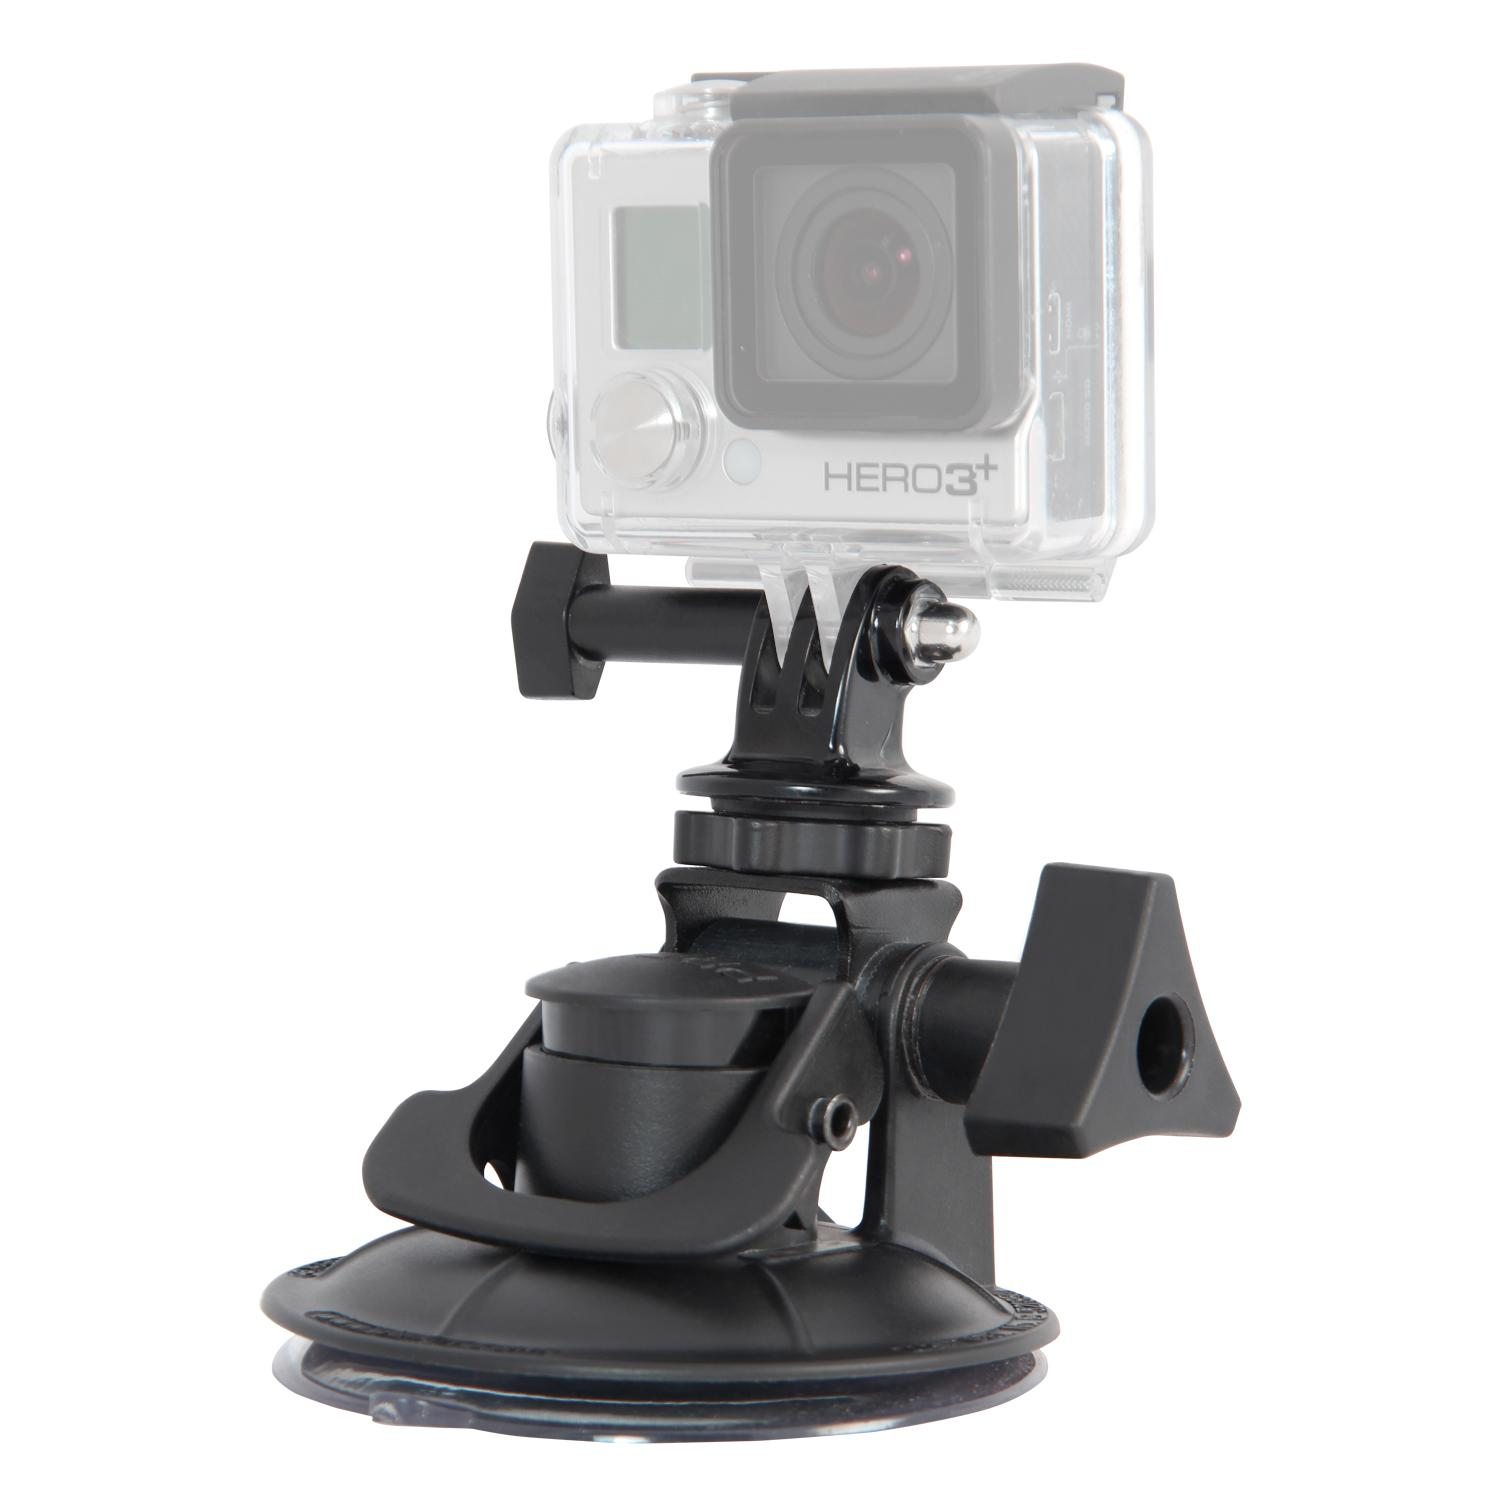 Amazon.com : Fat Gecko Stealth Suction Mount for GoPro Action Camera ...